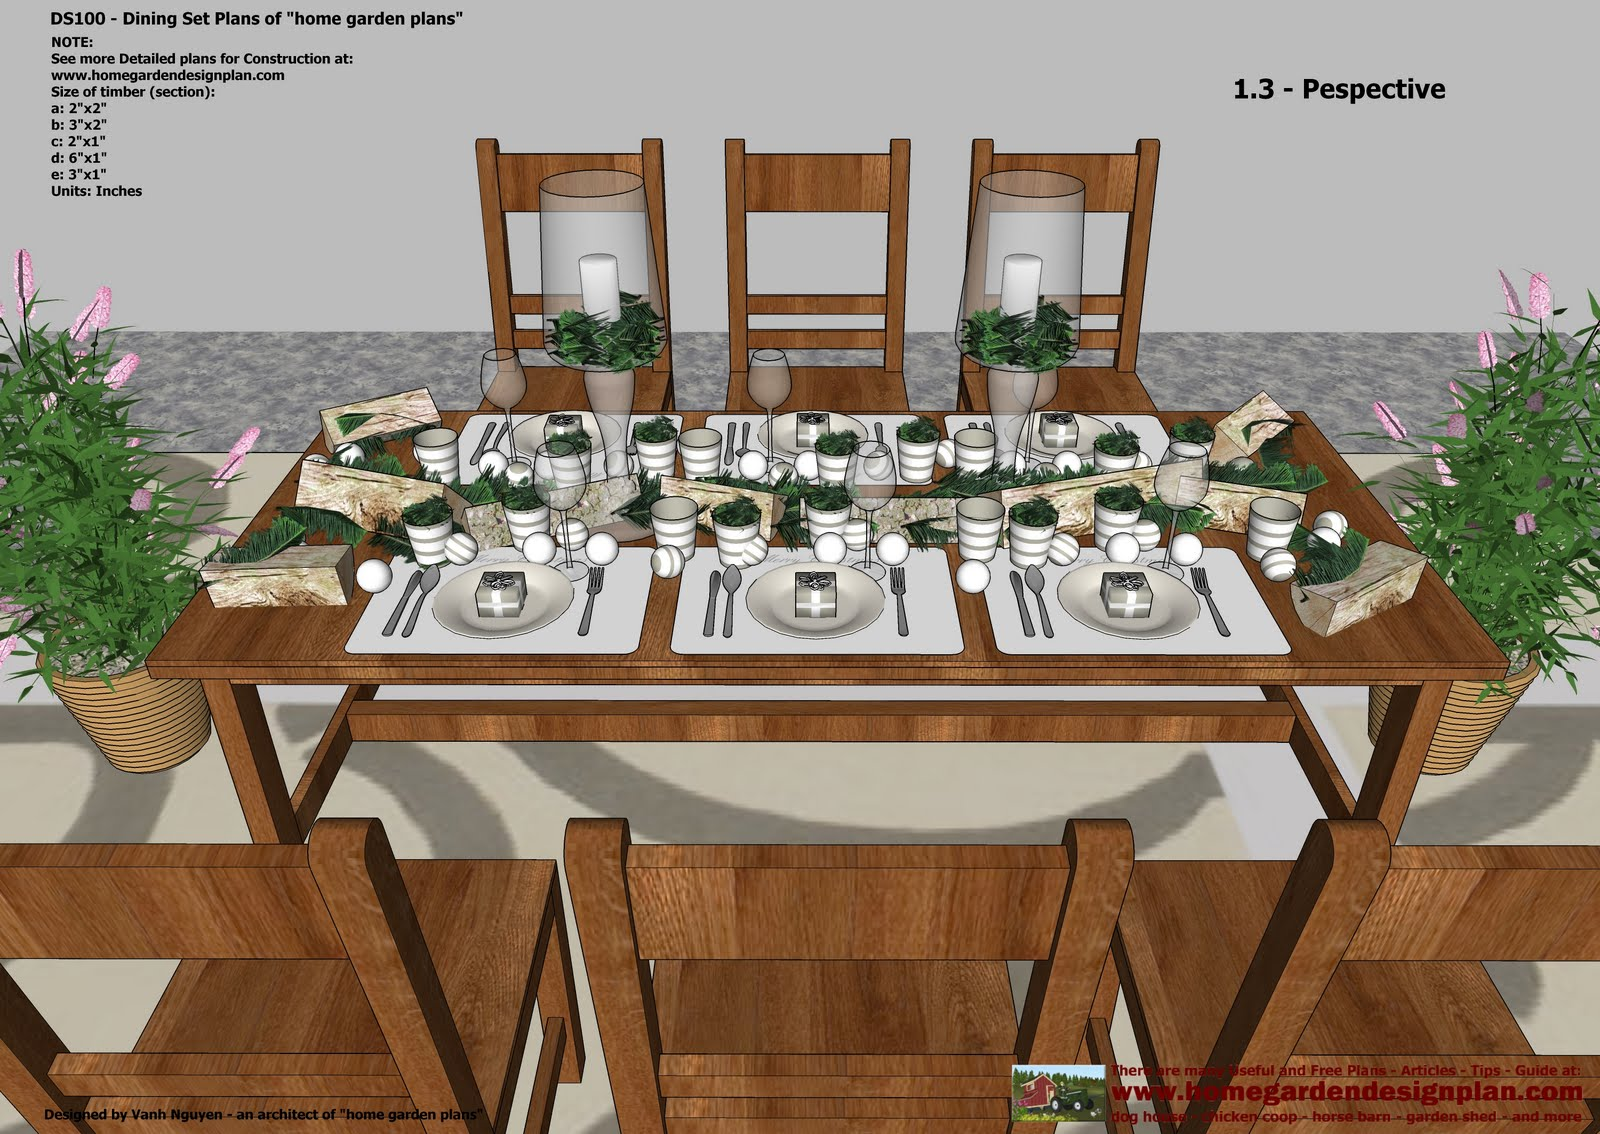 DS100 - Dining Table Set Plans - Woodworking Plans